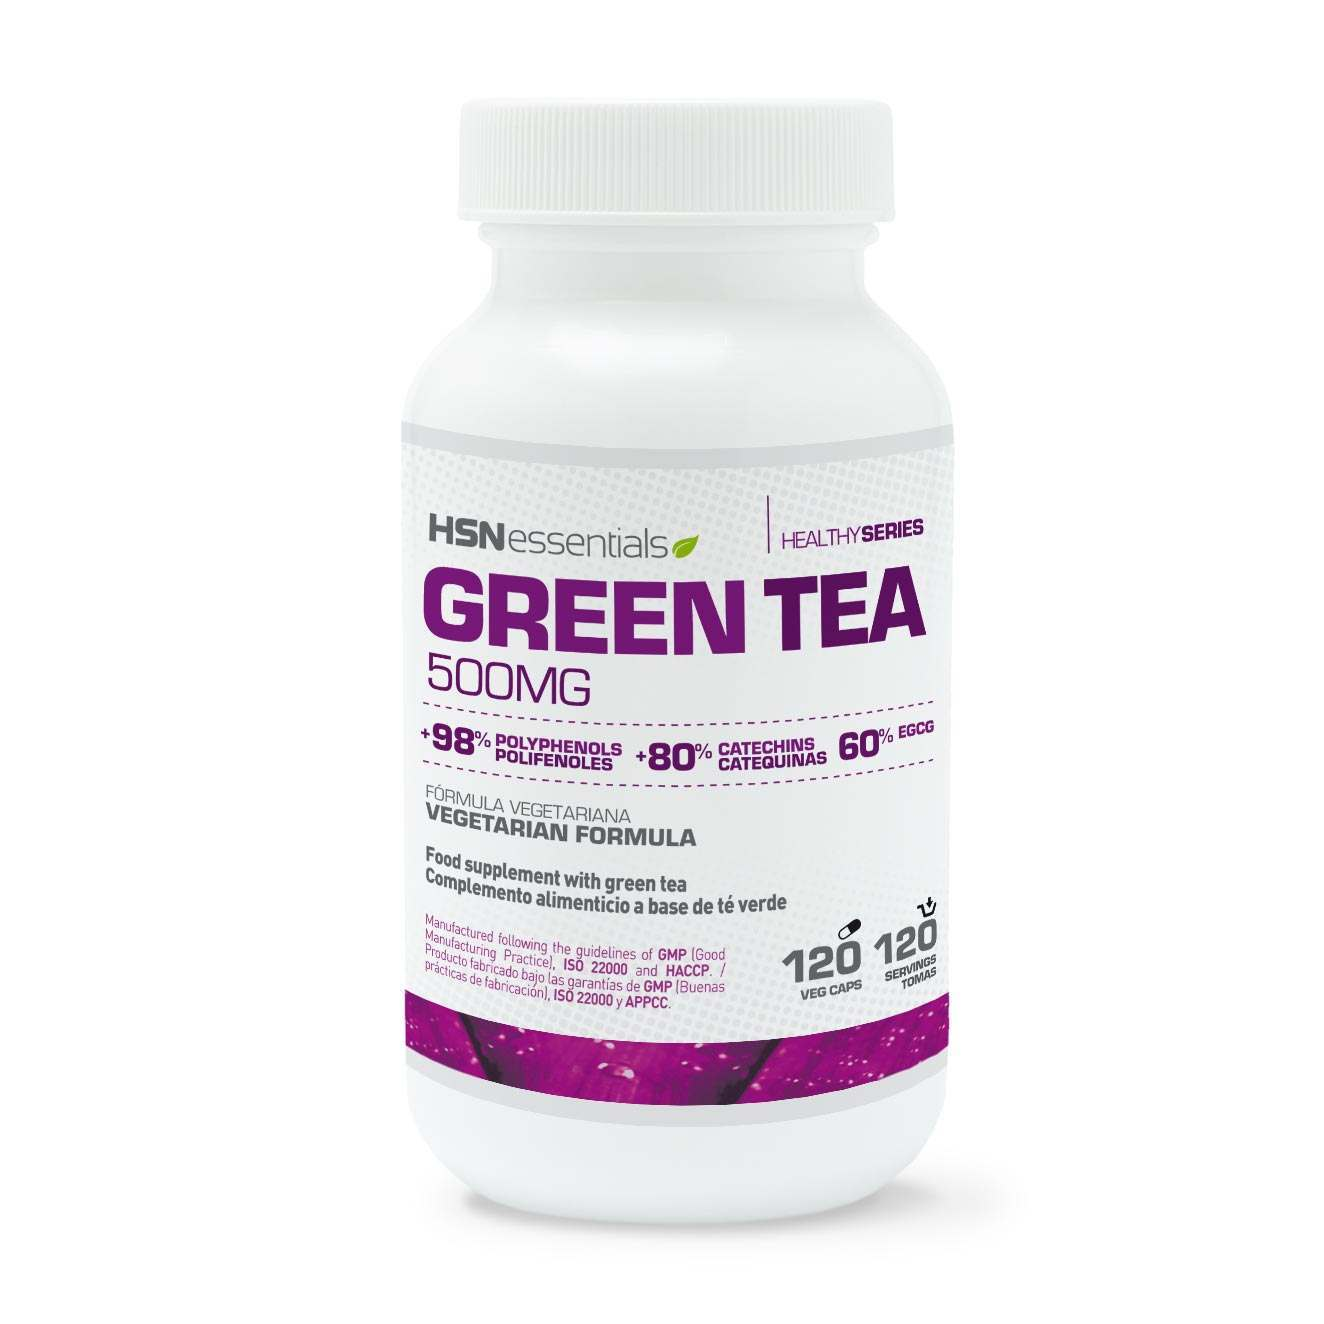 Té verde HSN Essentials